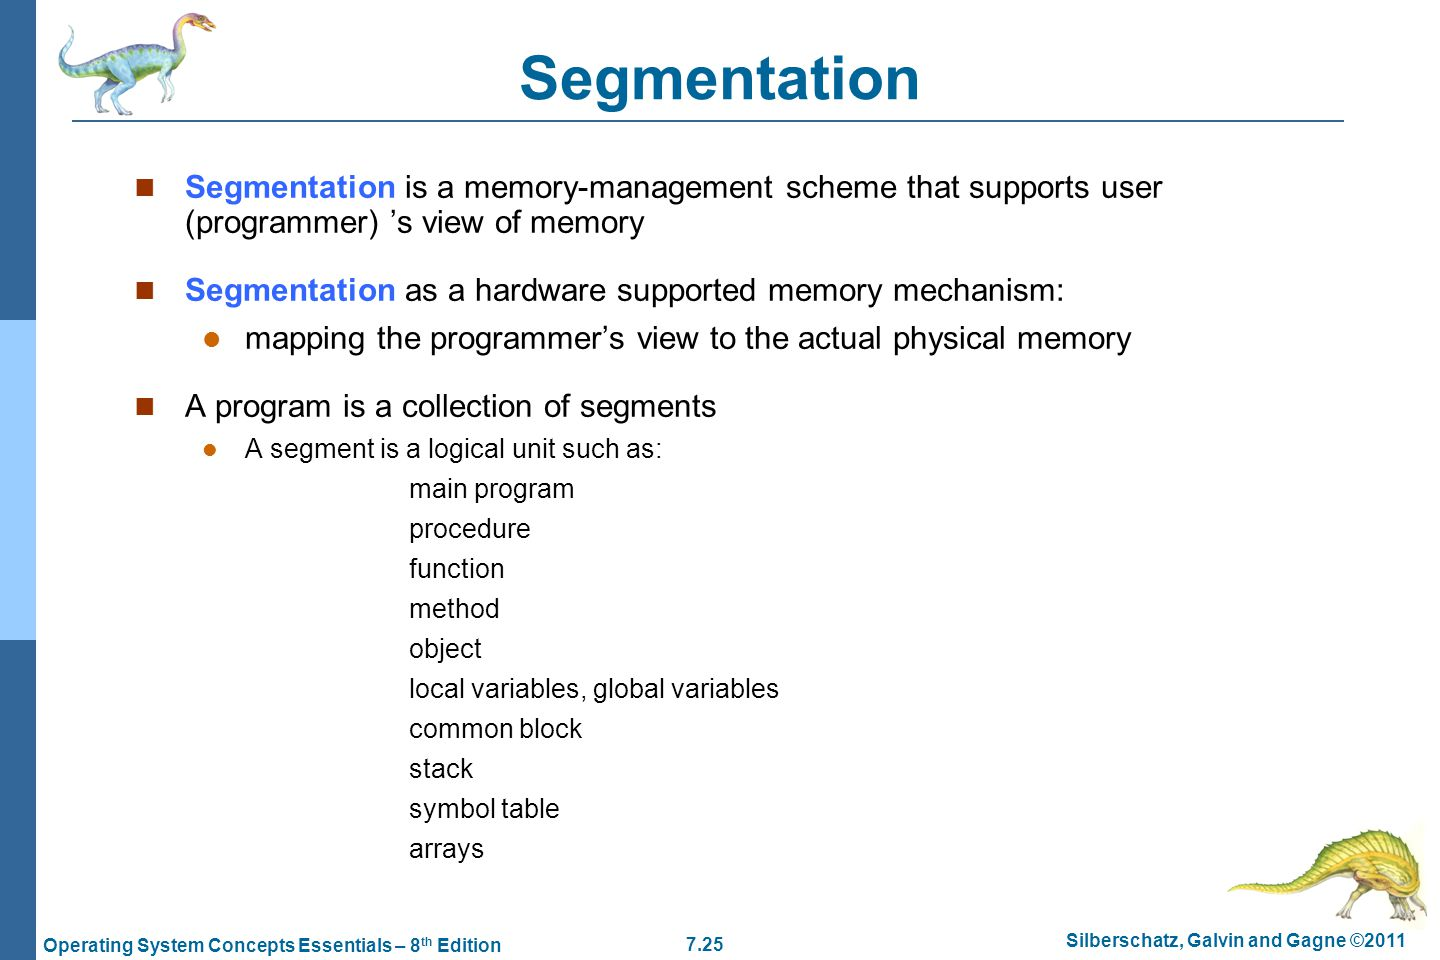 Segmentation Segmentation is a memory-management scheme that supports user (programmer) 's view of memory.